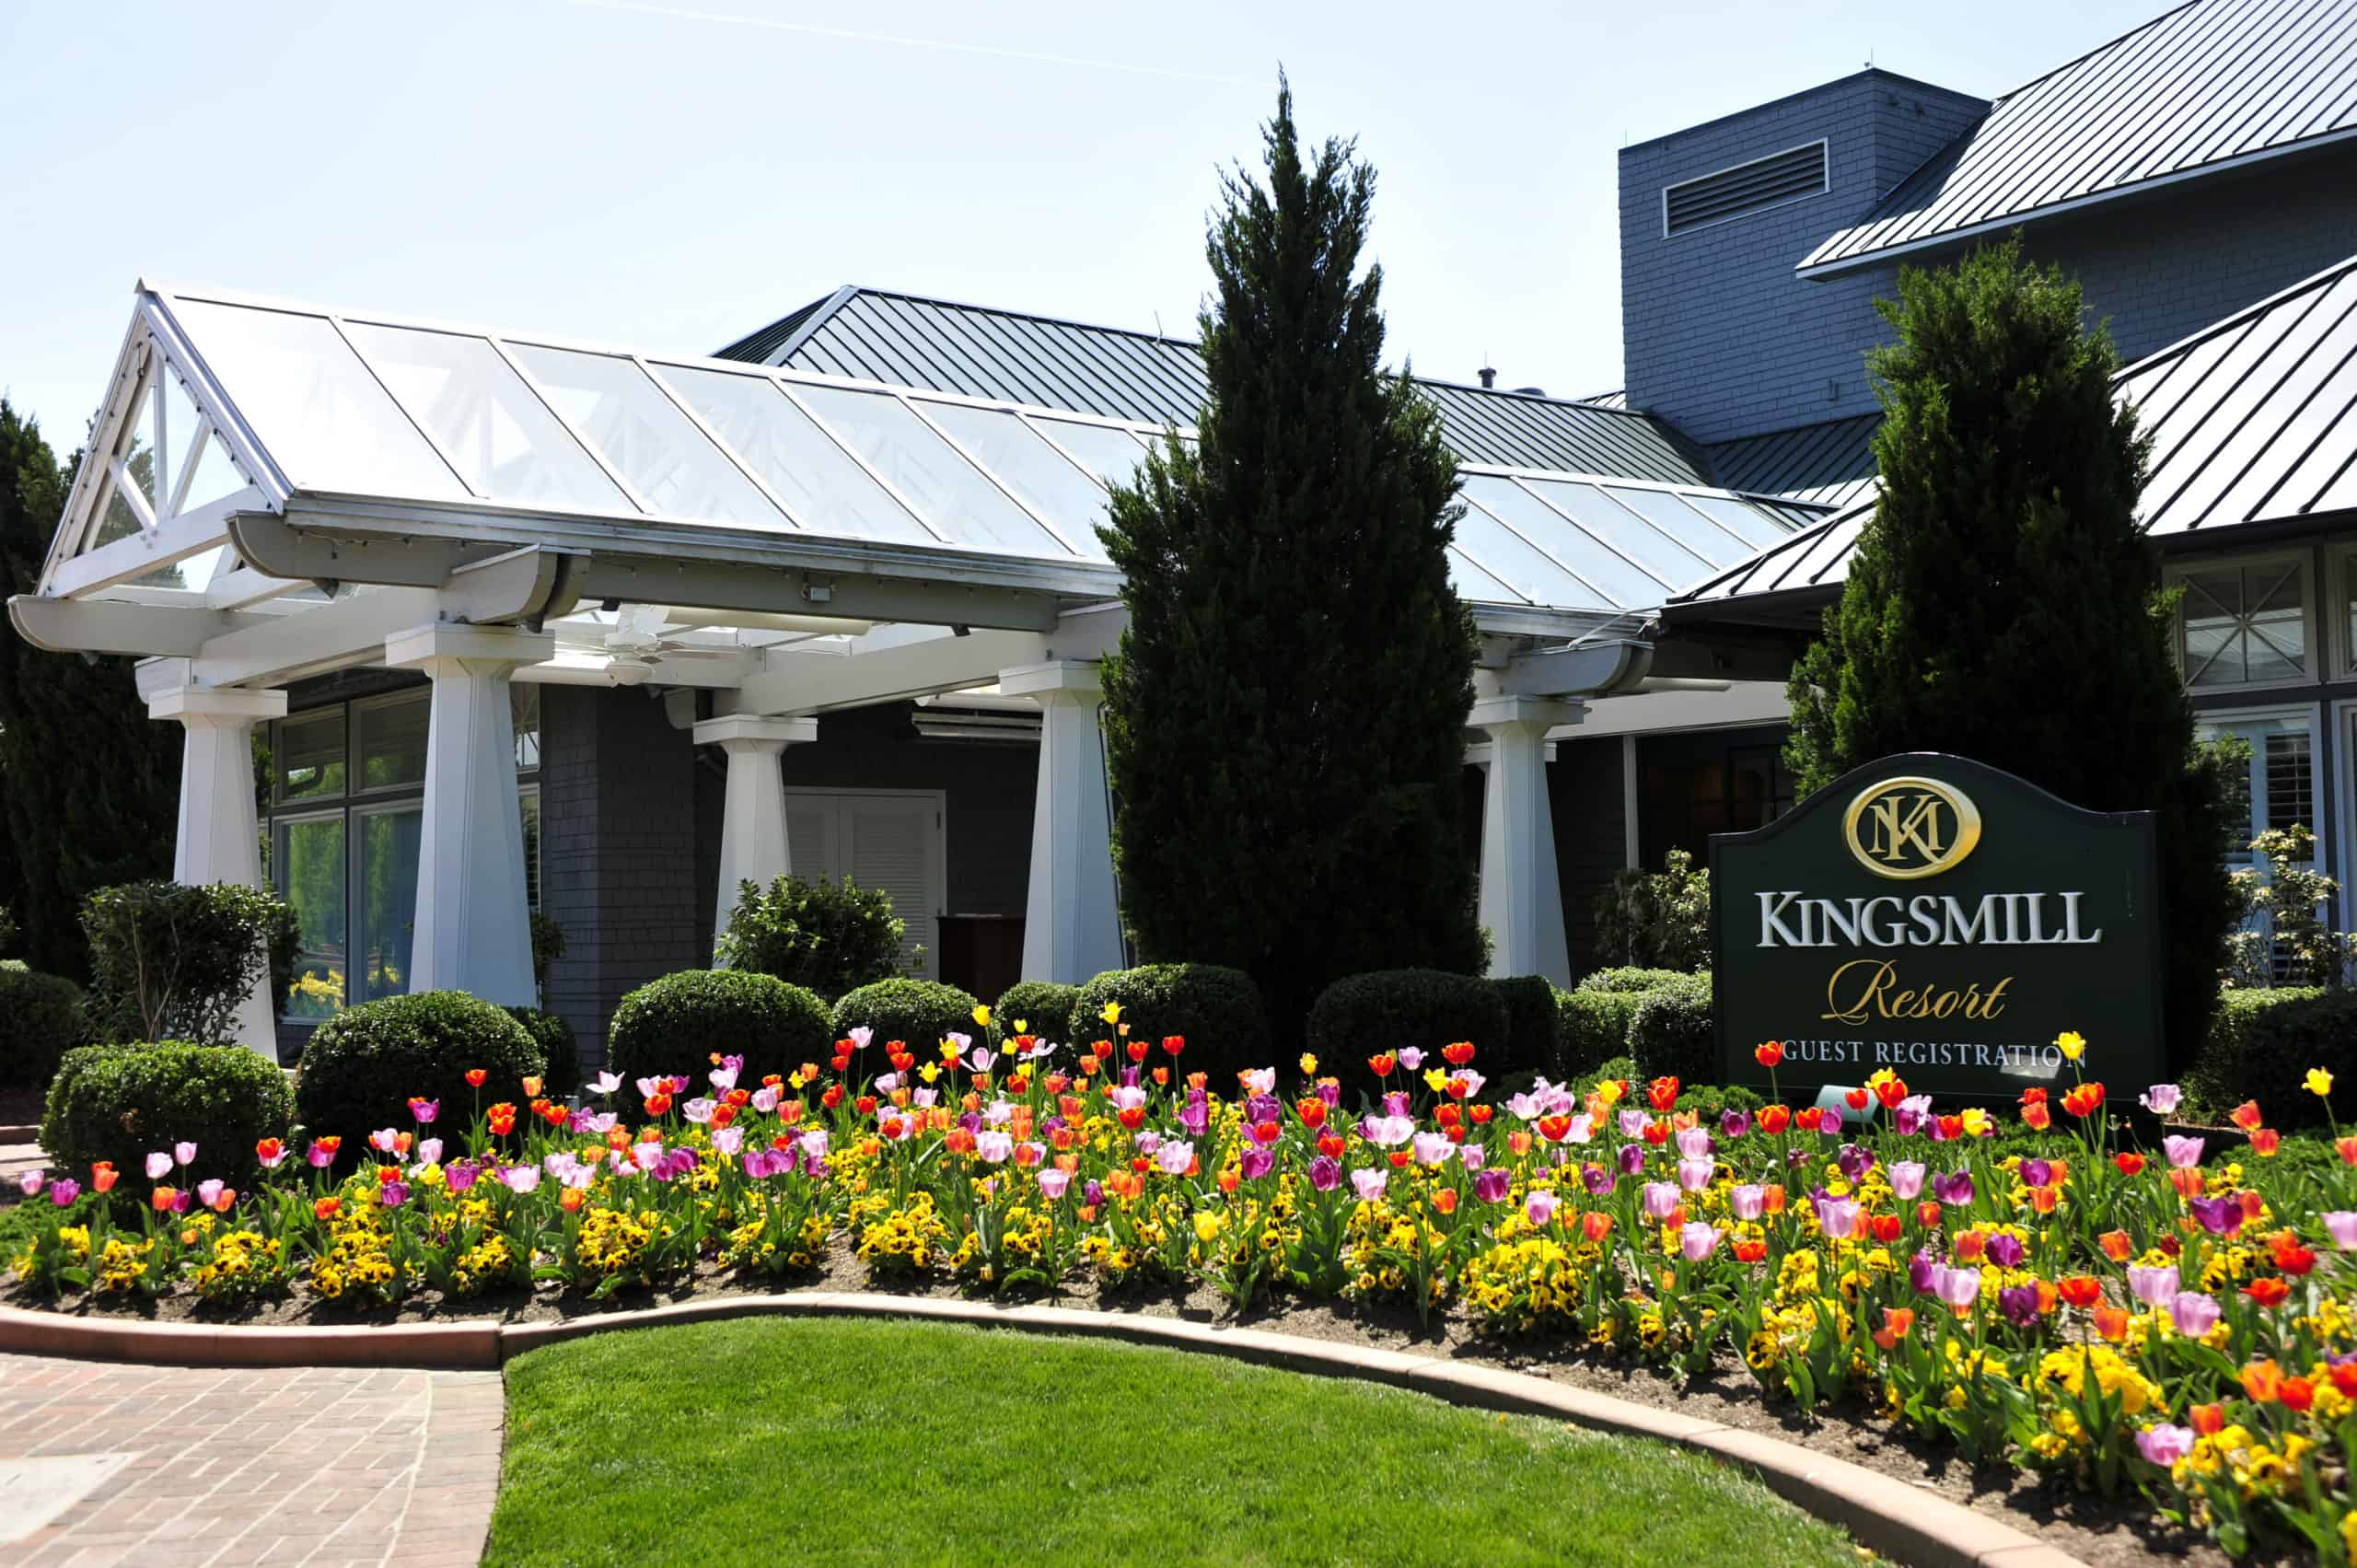 Kingsmill Resort in Williamsburg